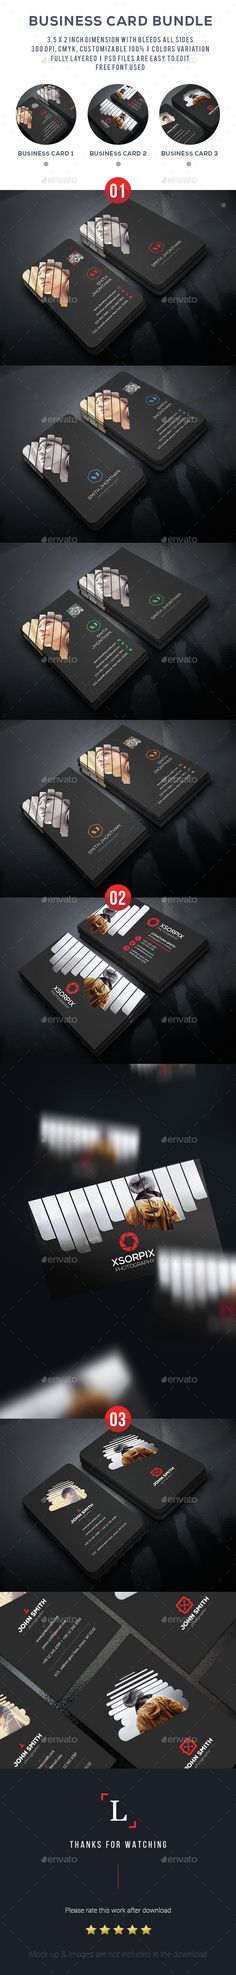 Photography Business Card Template PSD Bundle. Download here: http://graphicriver.net/item/photography-business-card-bundle/15211075?ref=ksioks